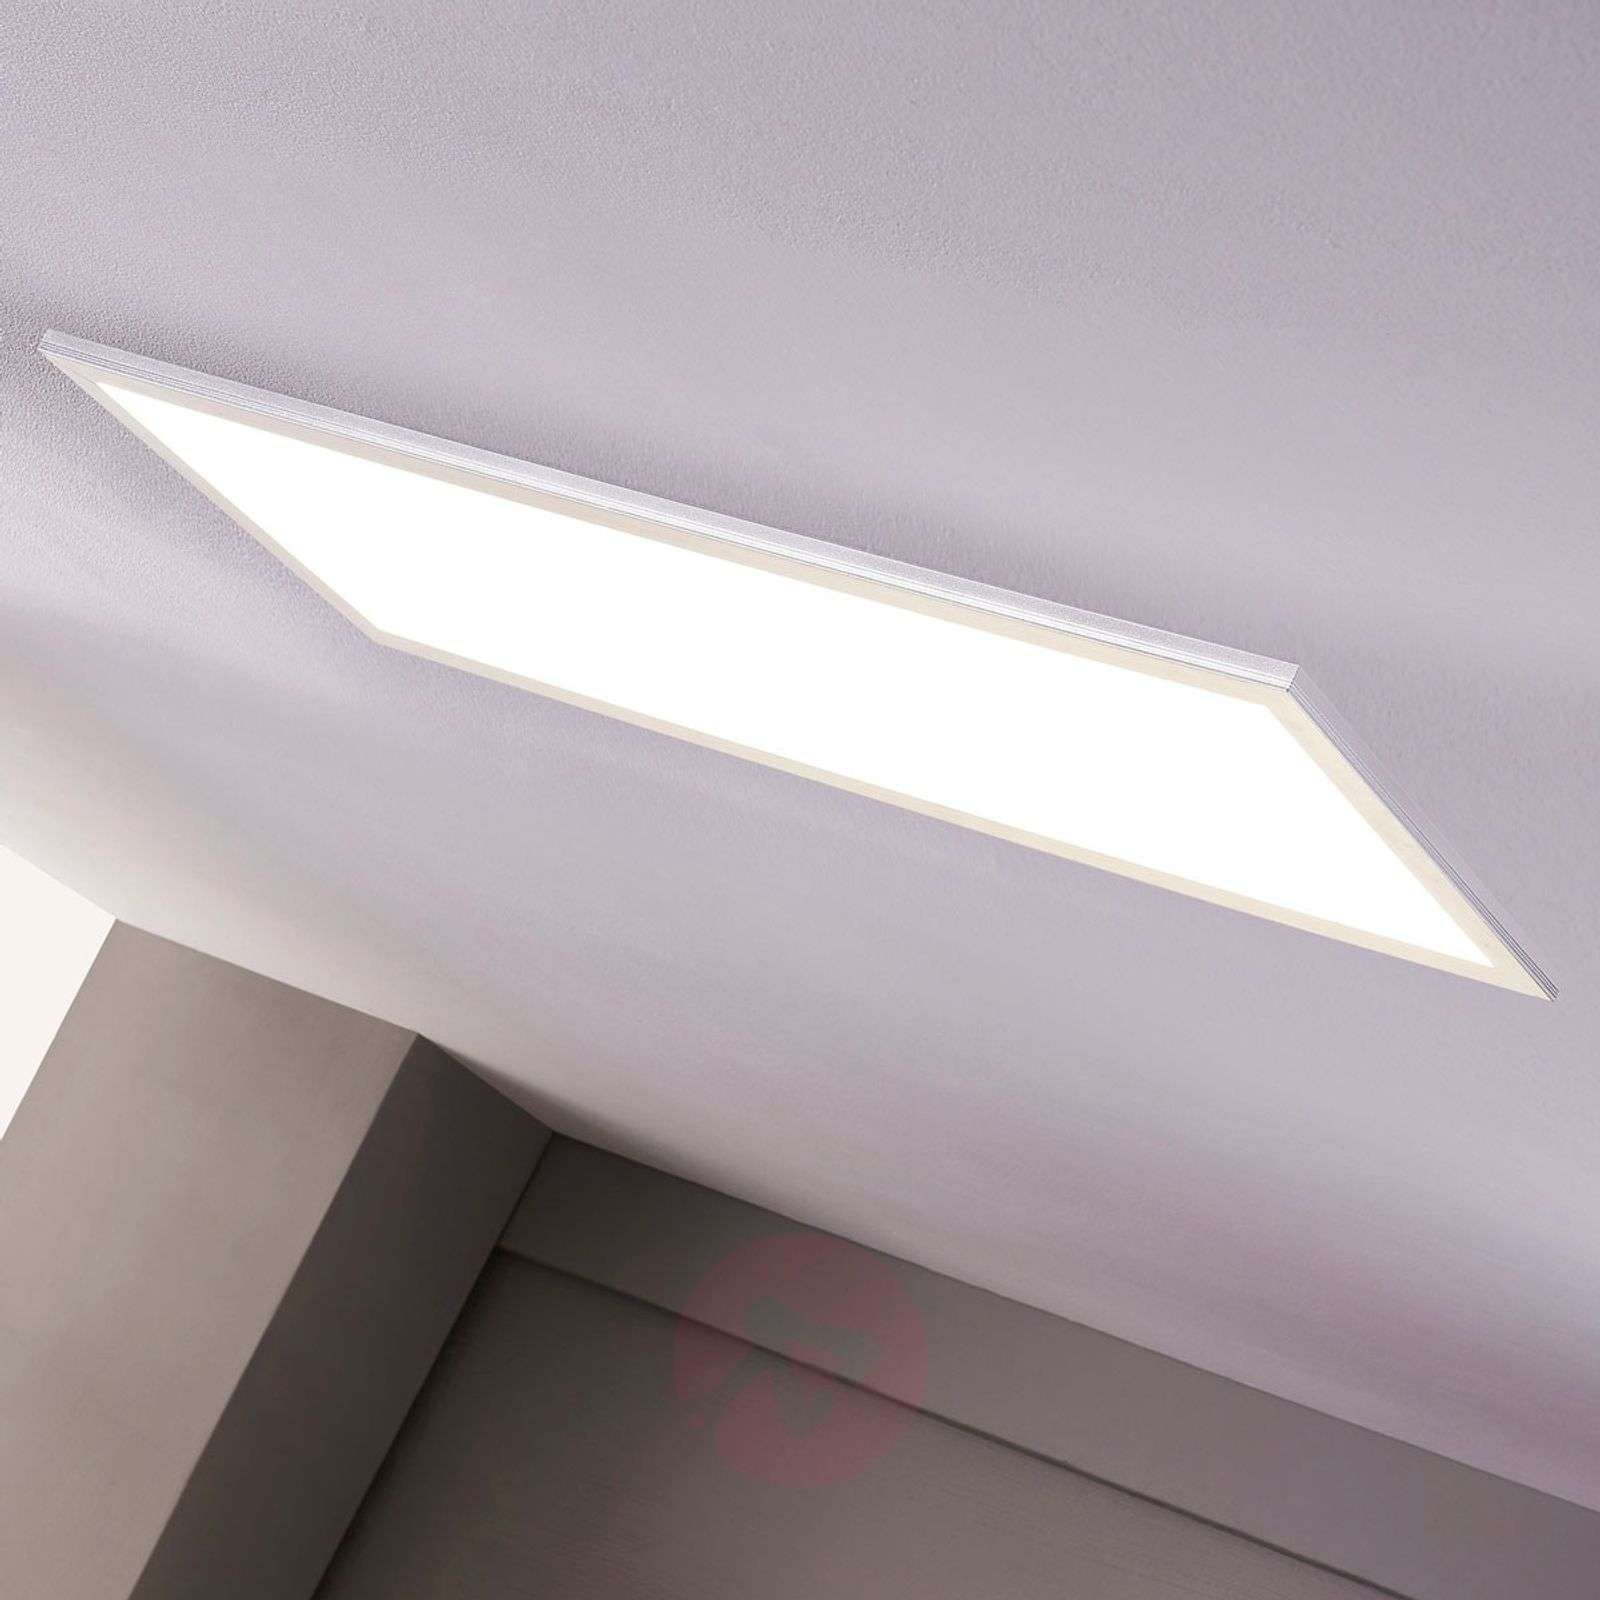 Felle led-plafondlamp Liv-9956004-01